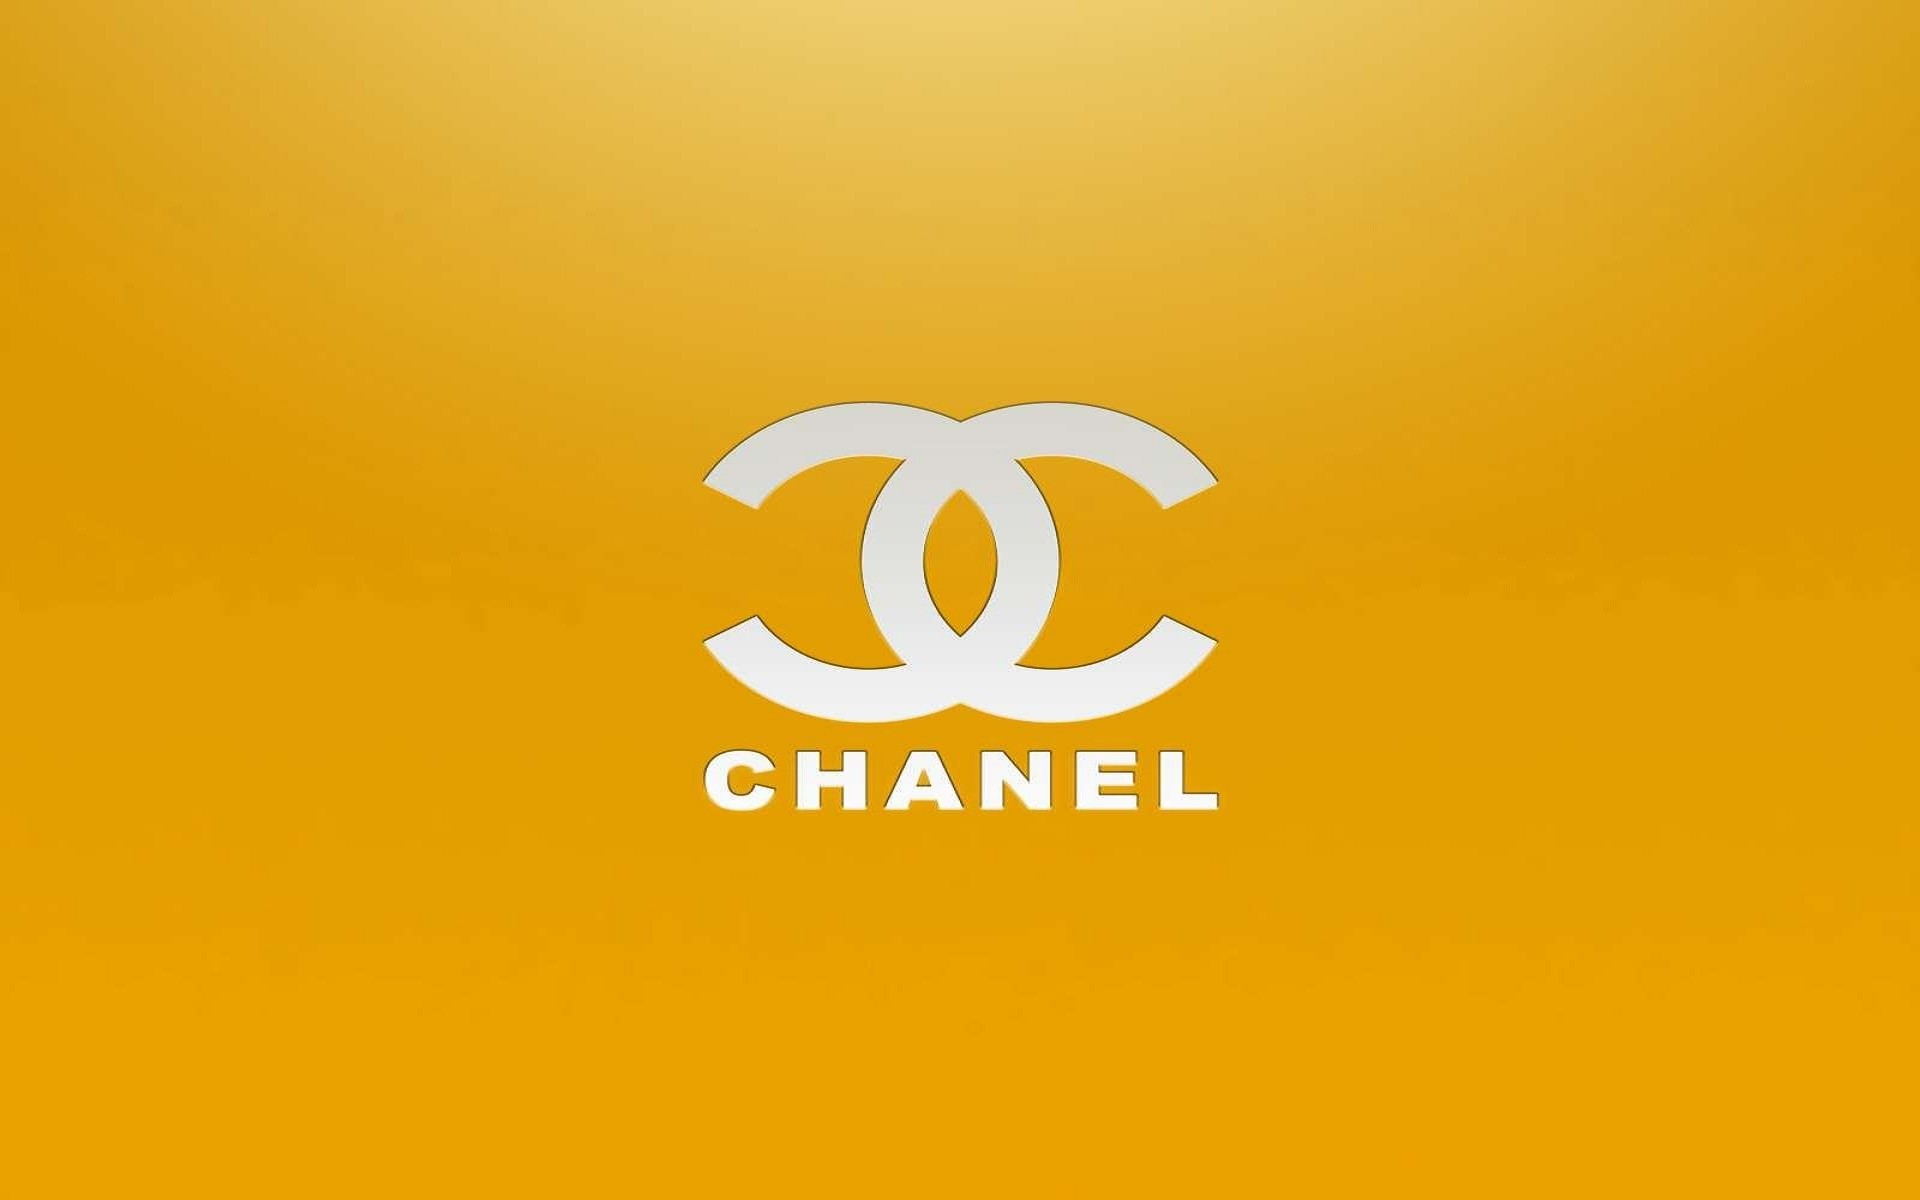 1920x1200 Logo chanel wallpapers HD free download.